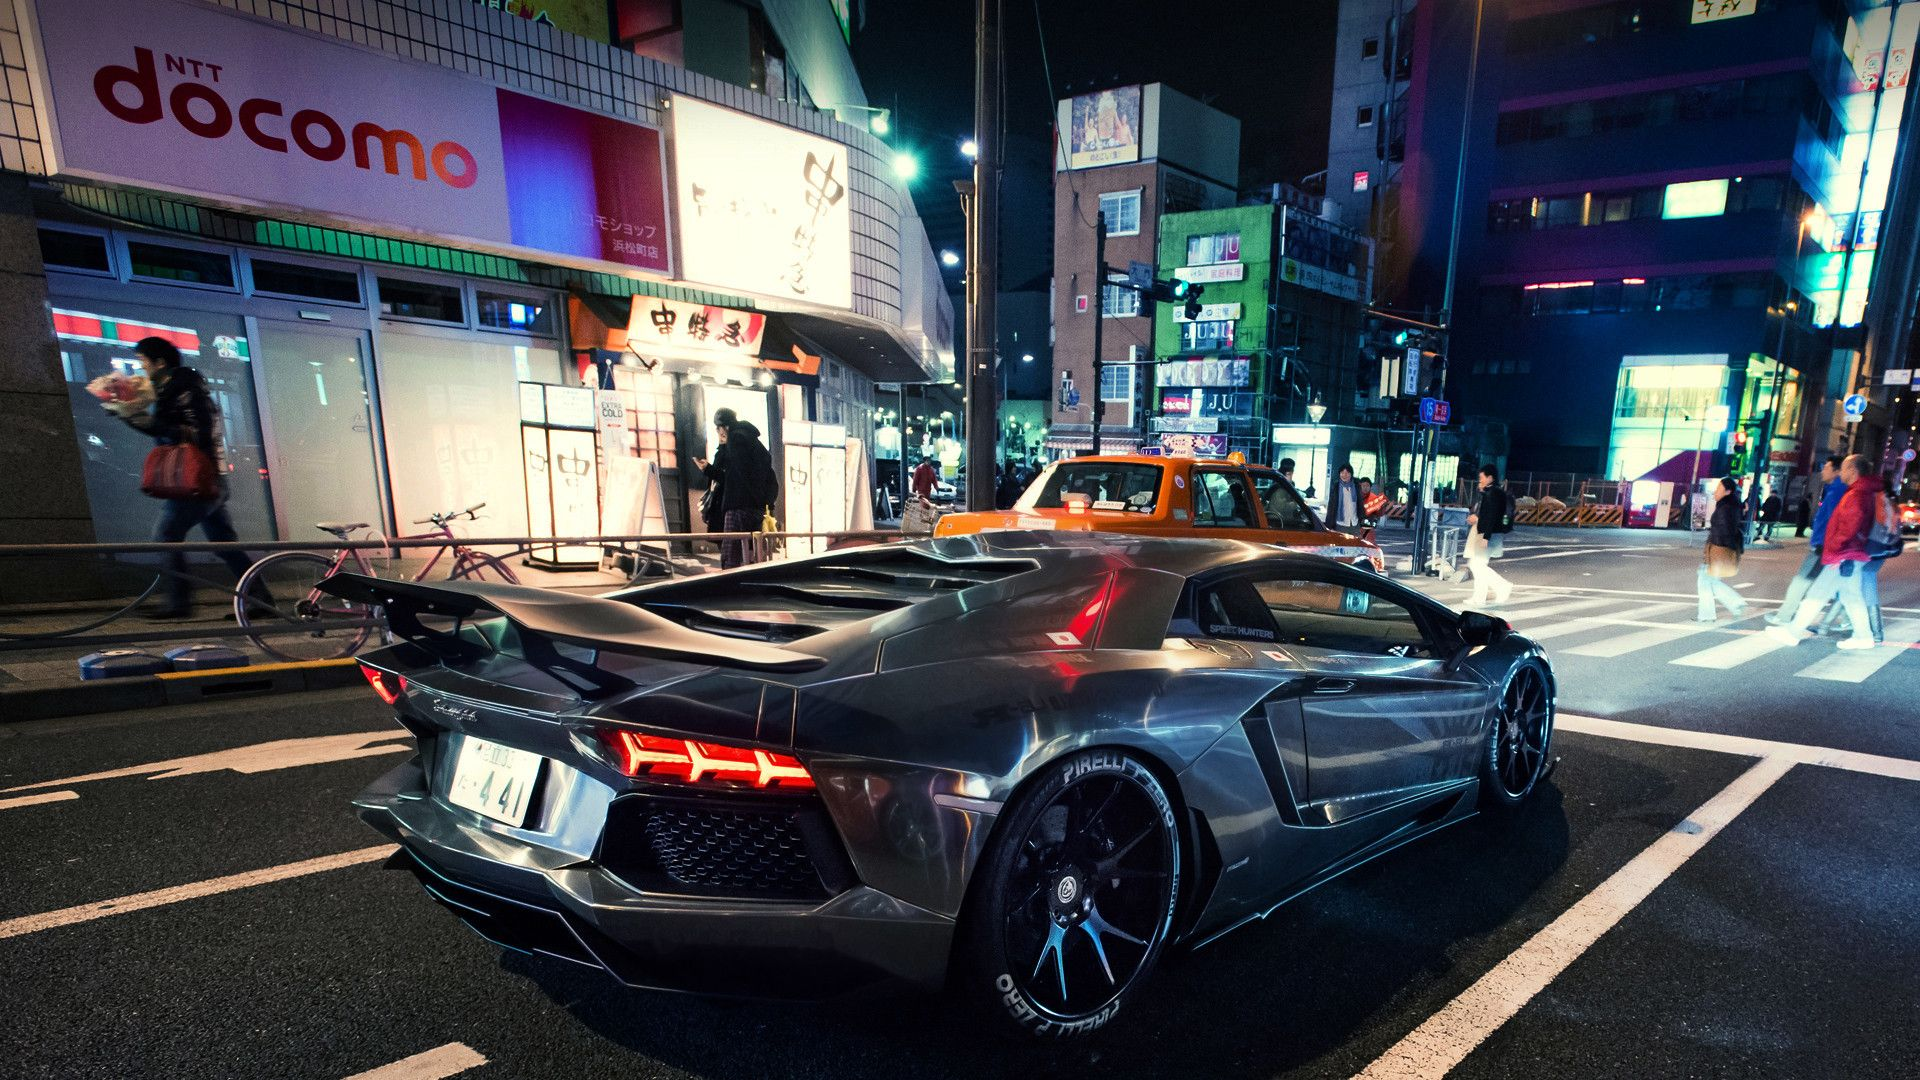 Tokyo Cars Wallpapers - Top Free Tokyo Cars Backgrounds ...